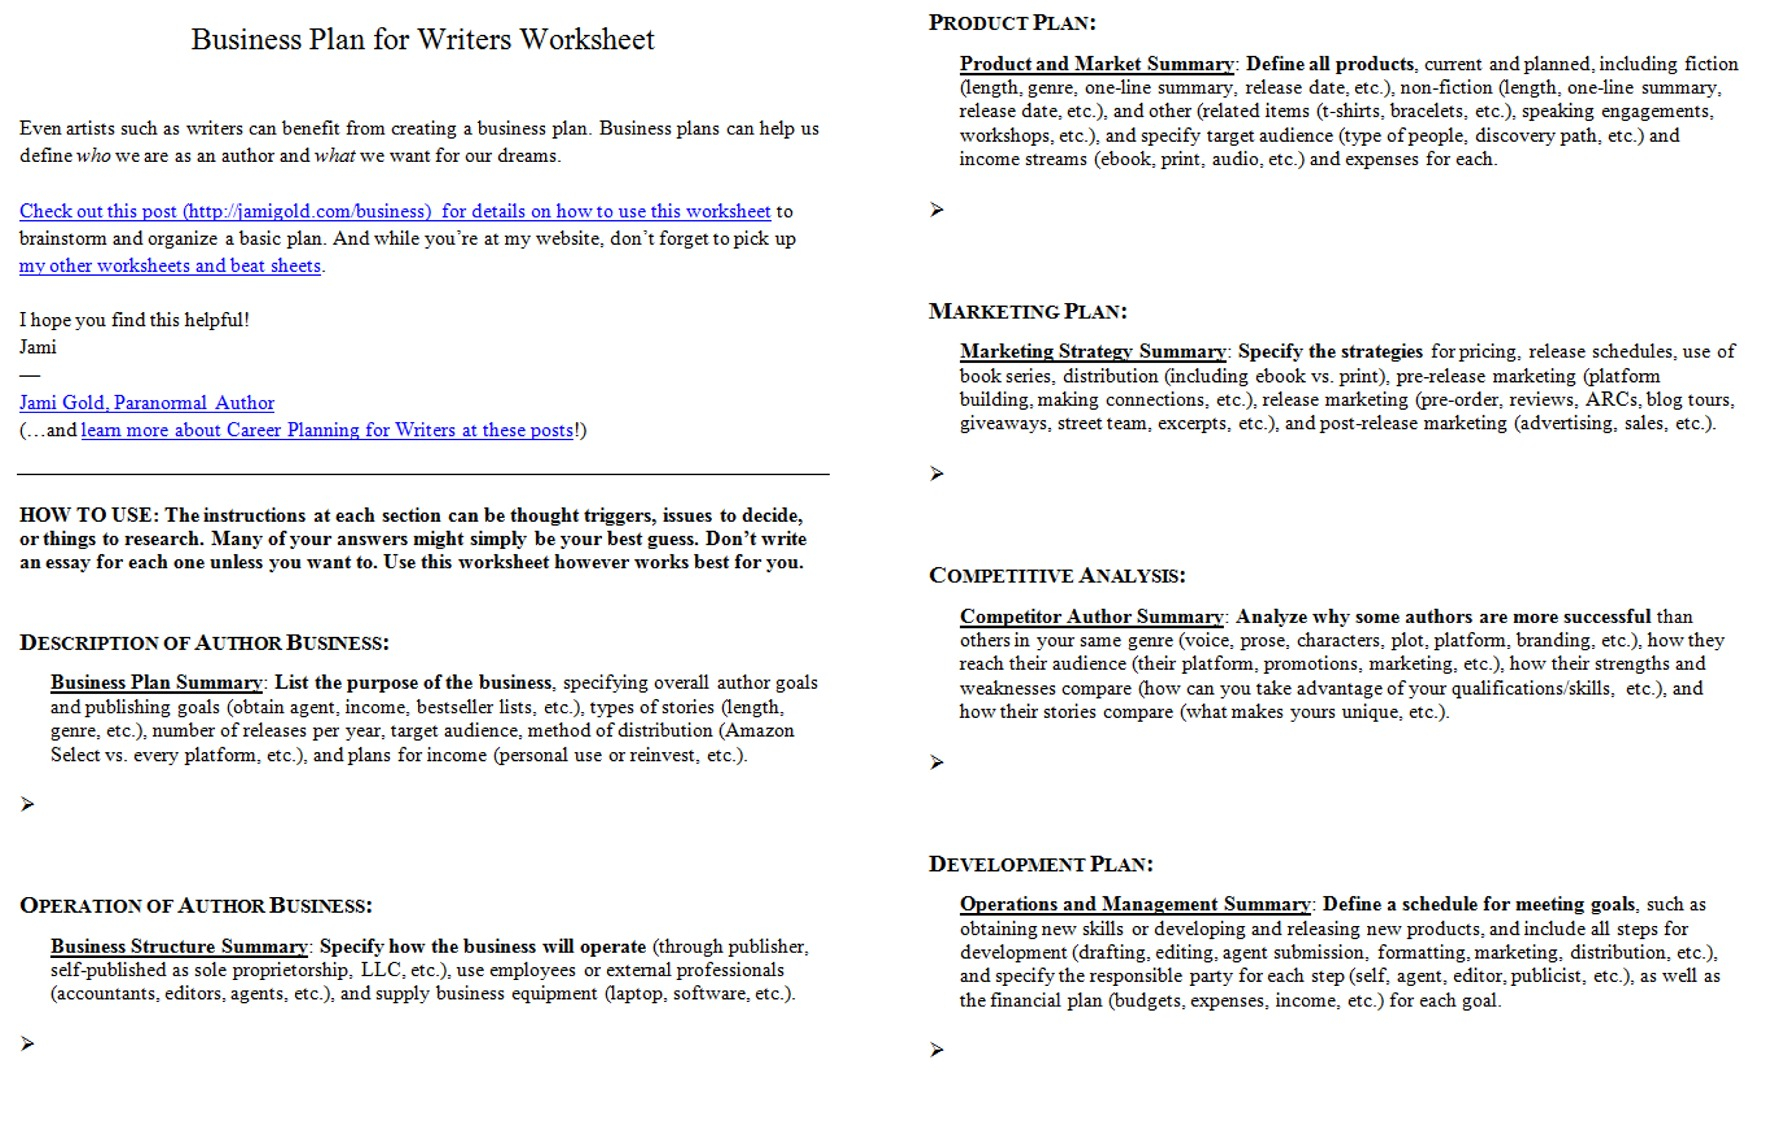 Weirdmailus  Marvellous Worksheets For Writers  Jami Gold Paranormal Author With Gorgeous Screen Shot Of Both Pages Of The Business Plan For Writers Worksheet With Archaic Circle Geometry Worksheet Also Free Worksheets On Exponents In Addition Learn To Write Numbers Printable Worksheets And Horizontal Addition And Subtraction Worksheets As Well As English Articles Worksheet Additionally Ks Maths Sats Revision Worksheets From Jamigoldcom With Weirdmailus  Gorgeous Worksheets For Writers  Jami Gold Paranormal Author With Archaic Screen Shot Of Both Pages Of The Business Plan For Writers Worksheet And Marvellous Circle Geometry Worksheet Also Free Worksheets On Exponents In Addition Learn To Write Numbers Printable Worksheets From Jamigoldcom